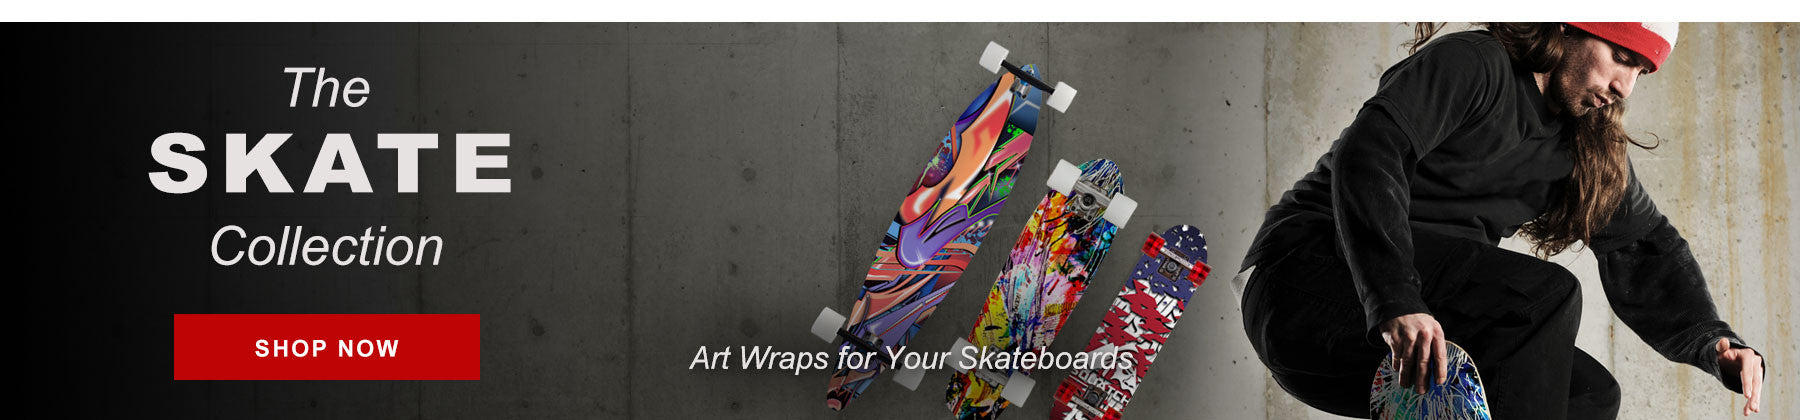 Art and individualism. Be your own with Longboard and Skateboard Wraps from SQUATCH. From parks to streets. You are a rebel non-conformist. Feel the outdoors, rural or urban.  From the concrete under Highway 99 in Seattle to the Embarcadero in San Francisco.  It's not always legal, but it's your day.